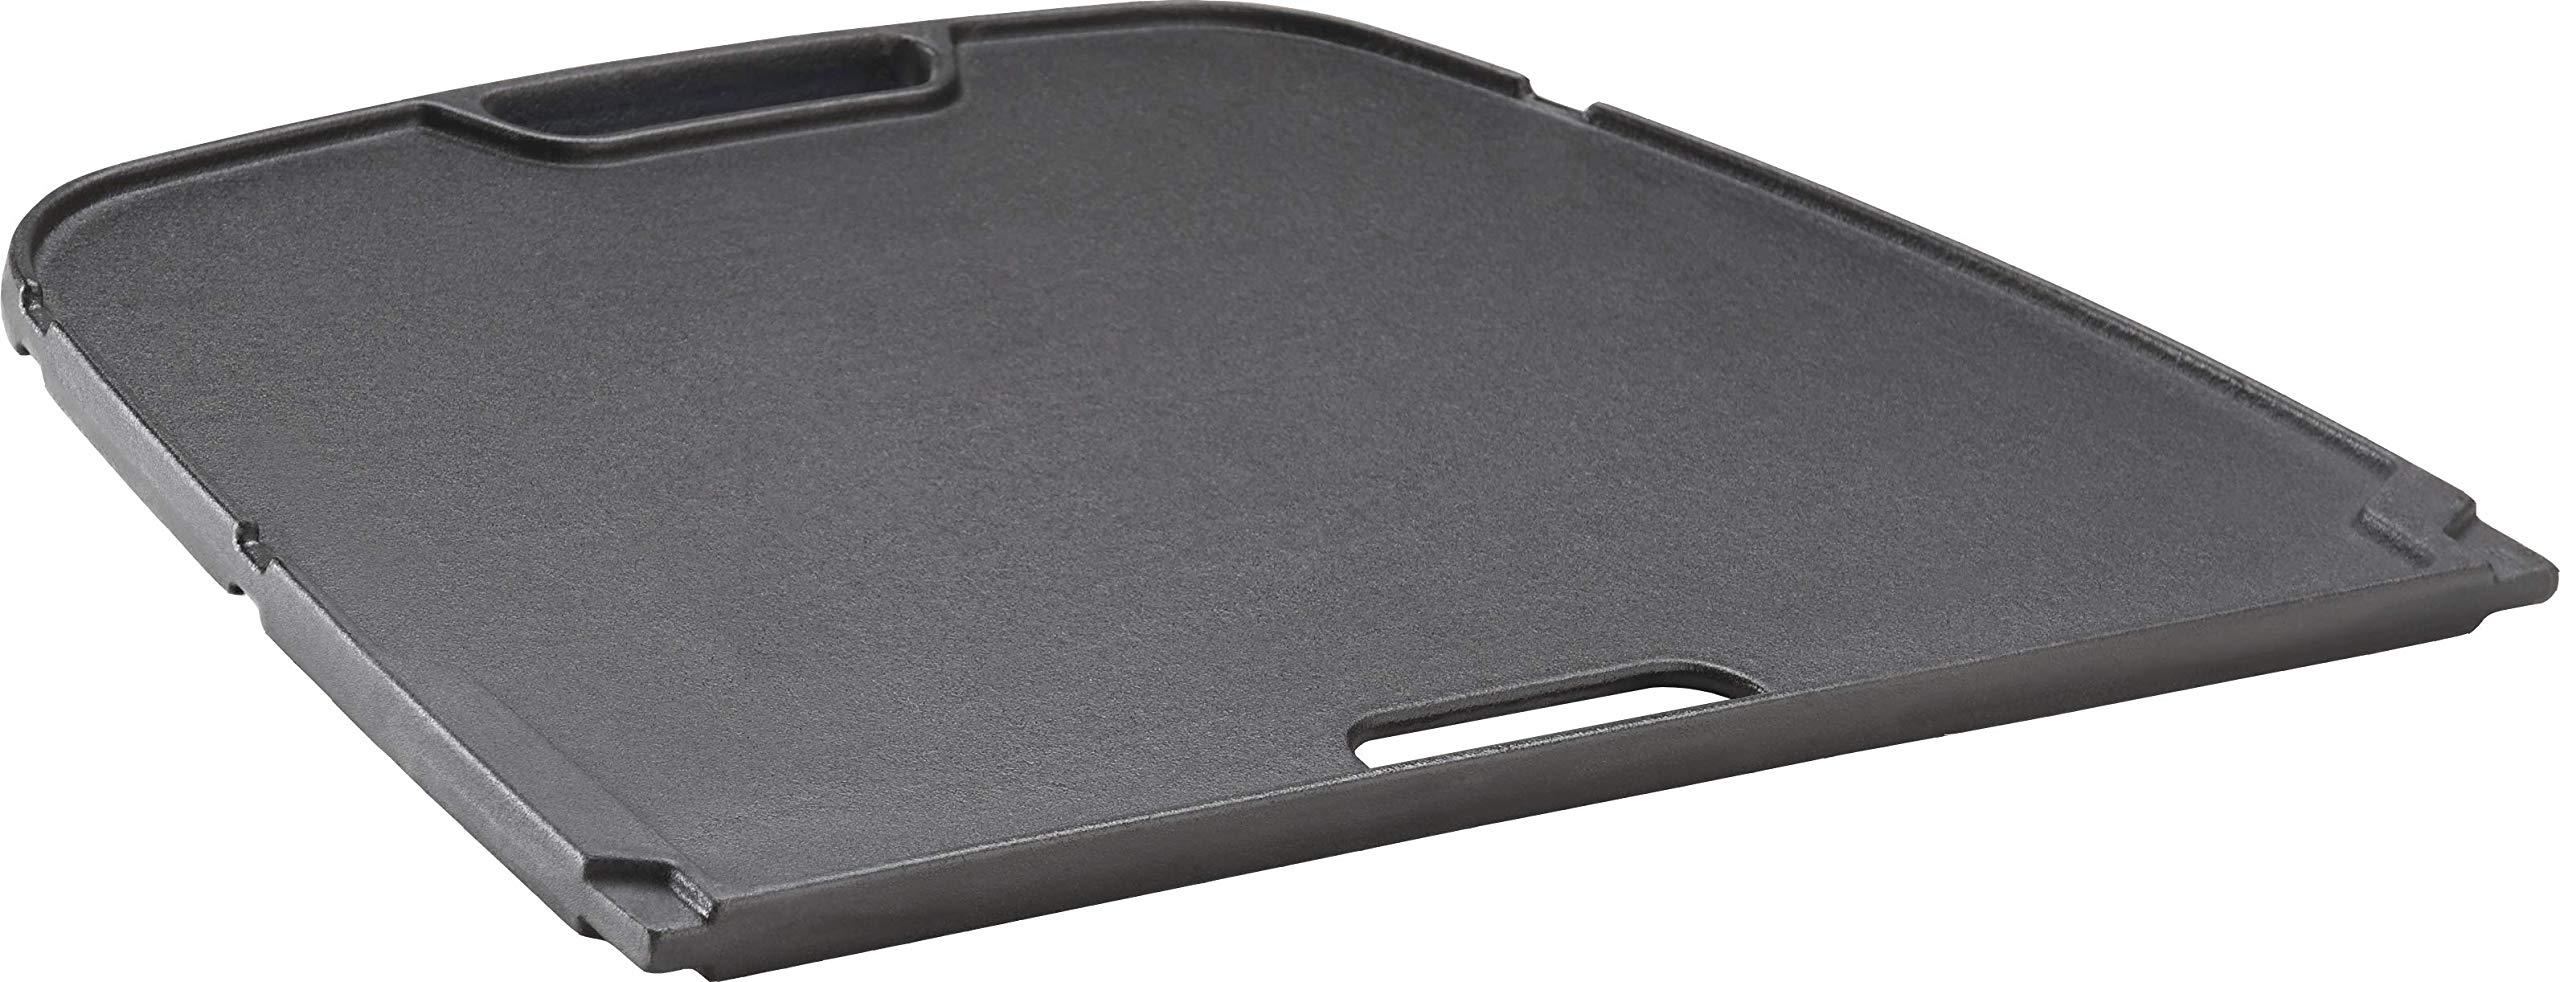 Napoleon Grills 56080 Commercial Reversible Griddle by Napoleon